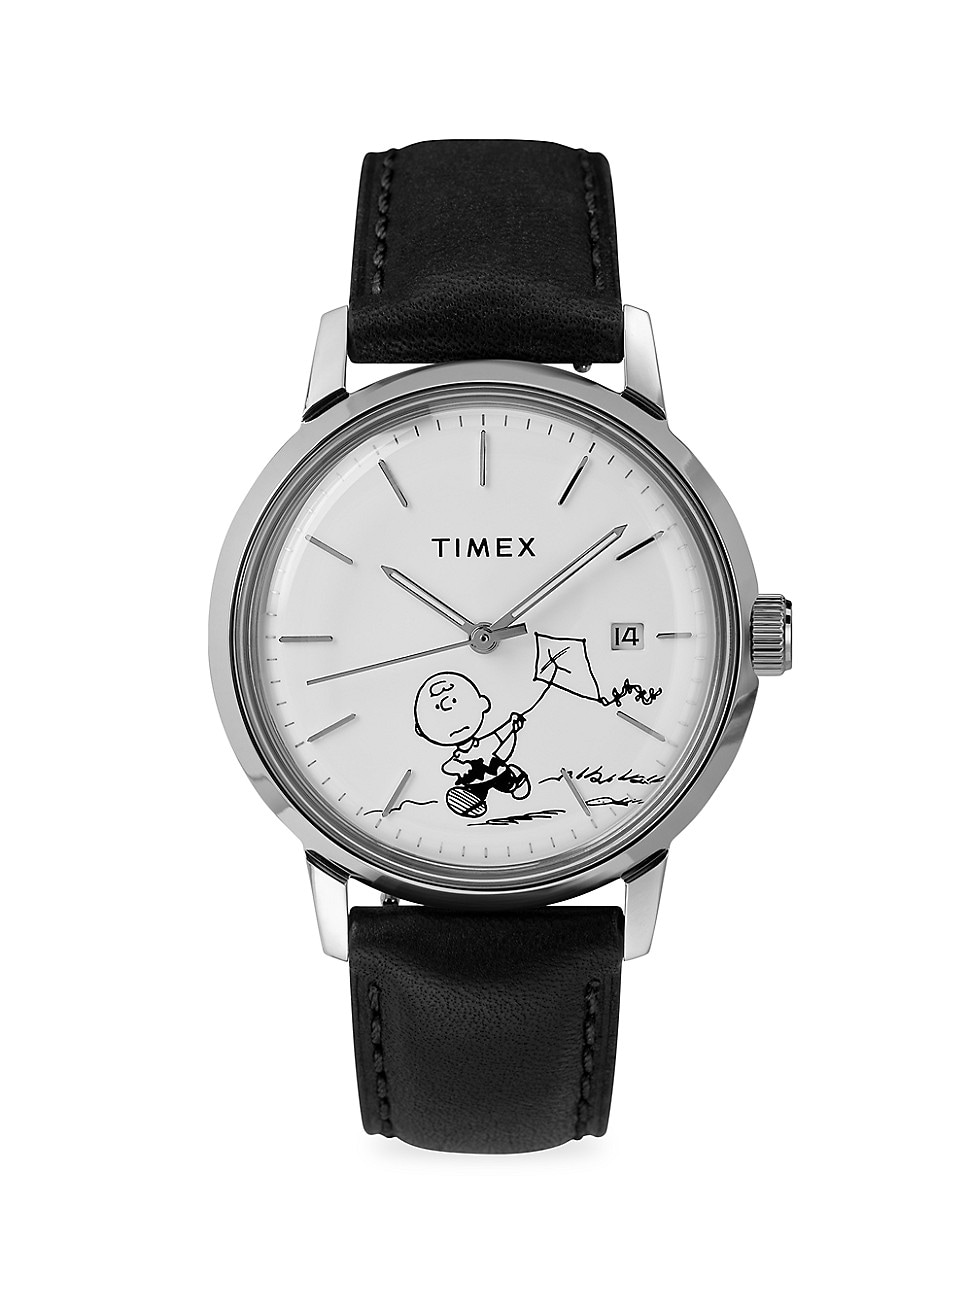 TIMEX MARLIN AUTOMATIC CHARLIE BROWN 40MM WATCH